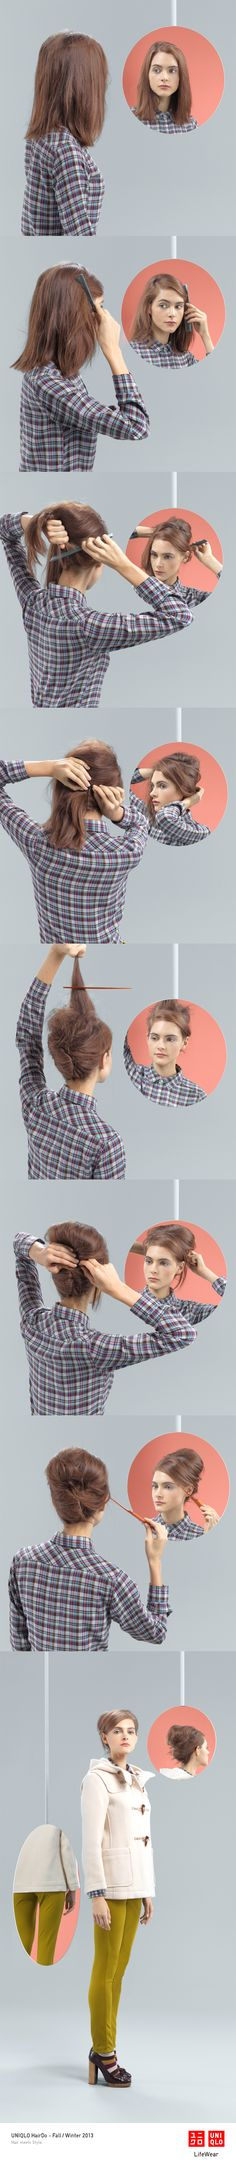 The Side Beehive #UpDo #Hair #Hairstyle #DIY #UNIQLO #HairDo